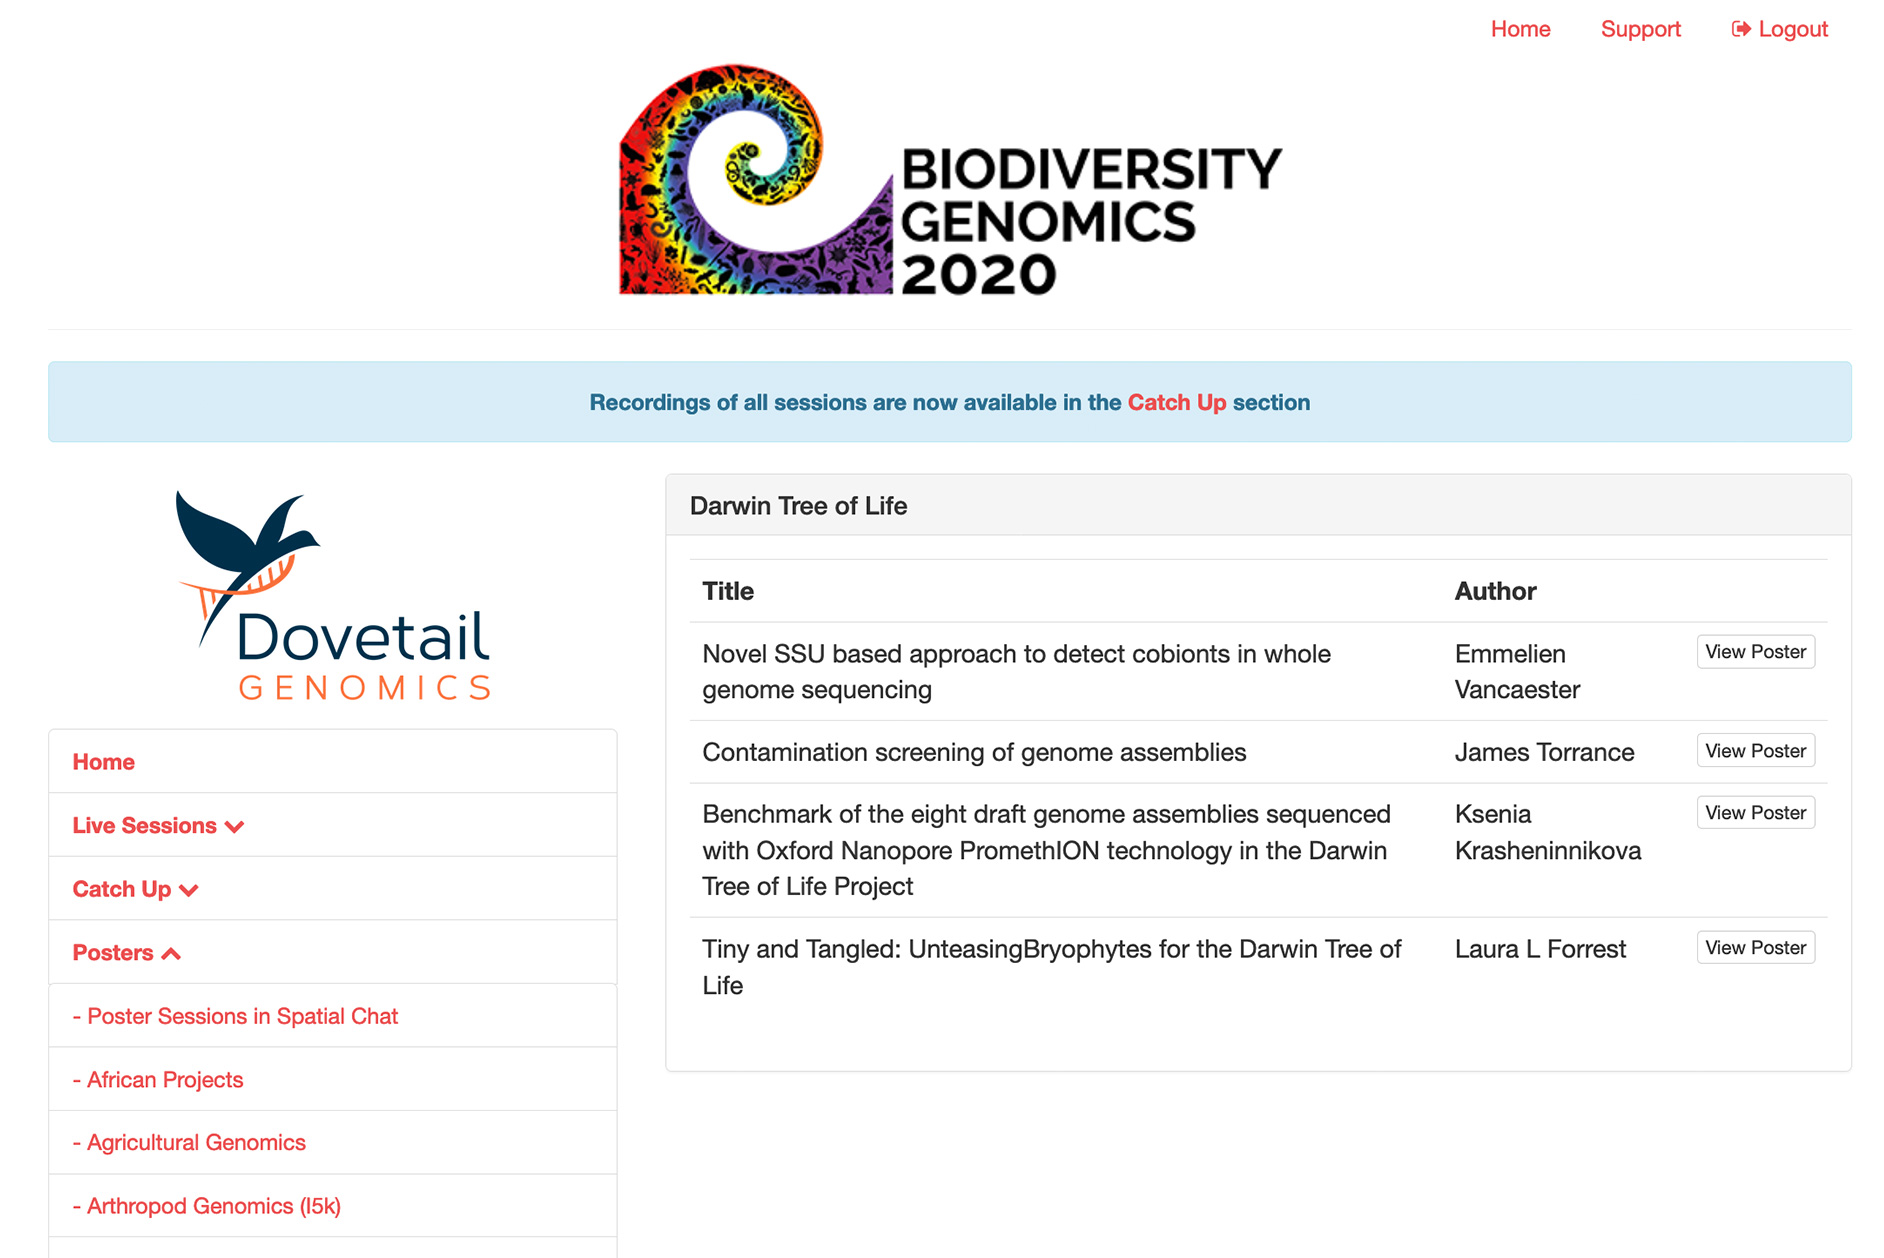 Screenshot from Biodiversity Genomics 2020 virtual conference